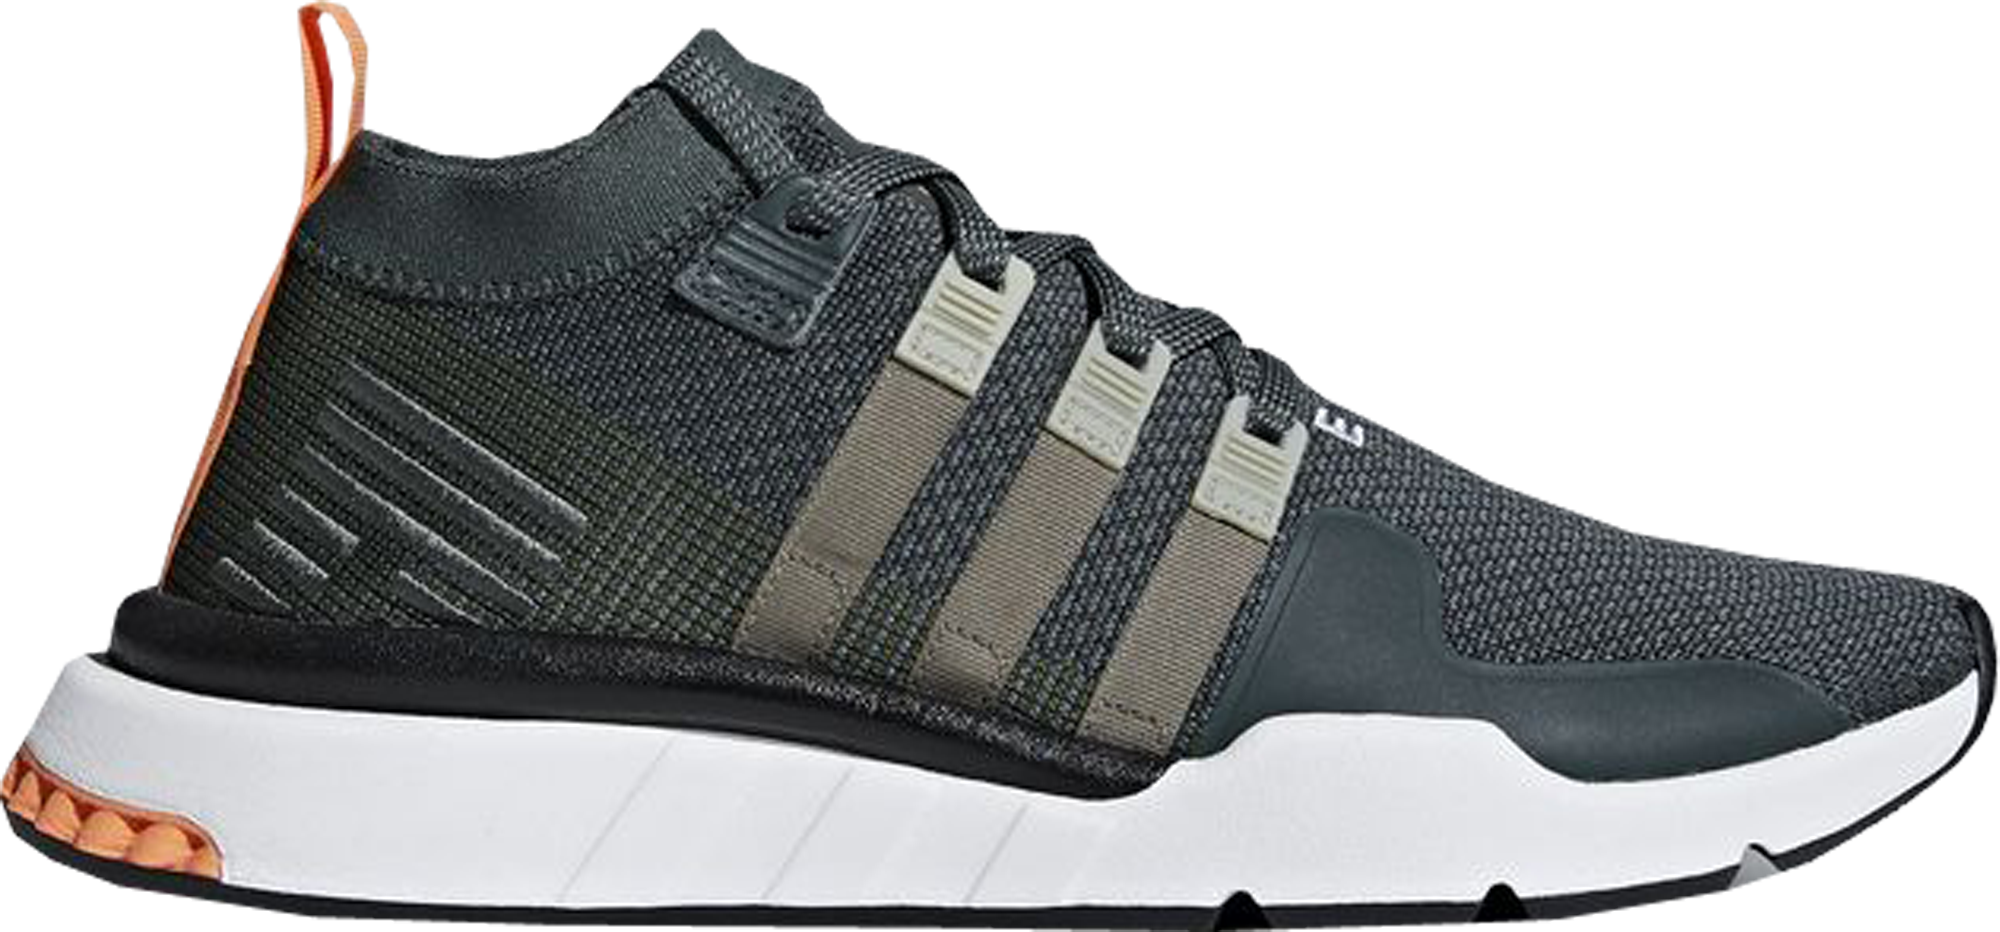 adidas EQT Support Mid Adv Legend Ivy